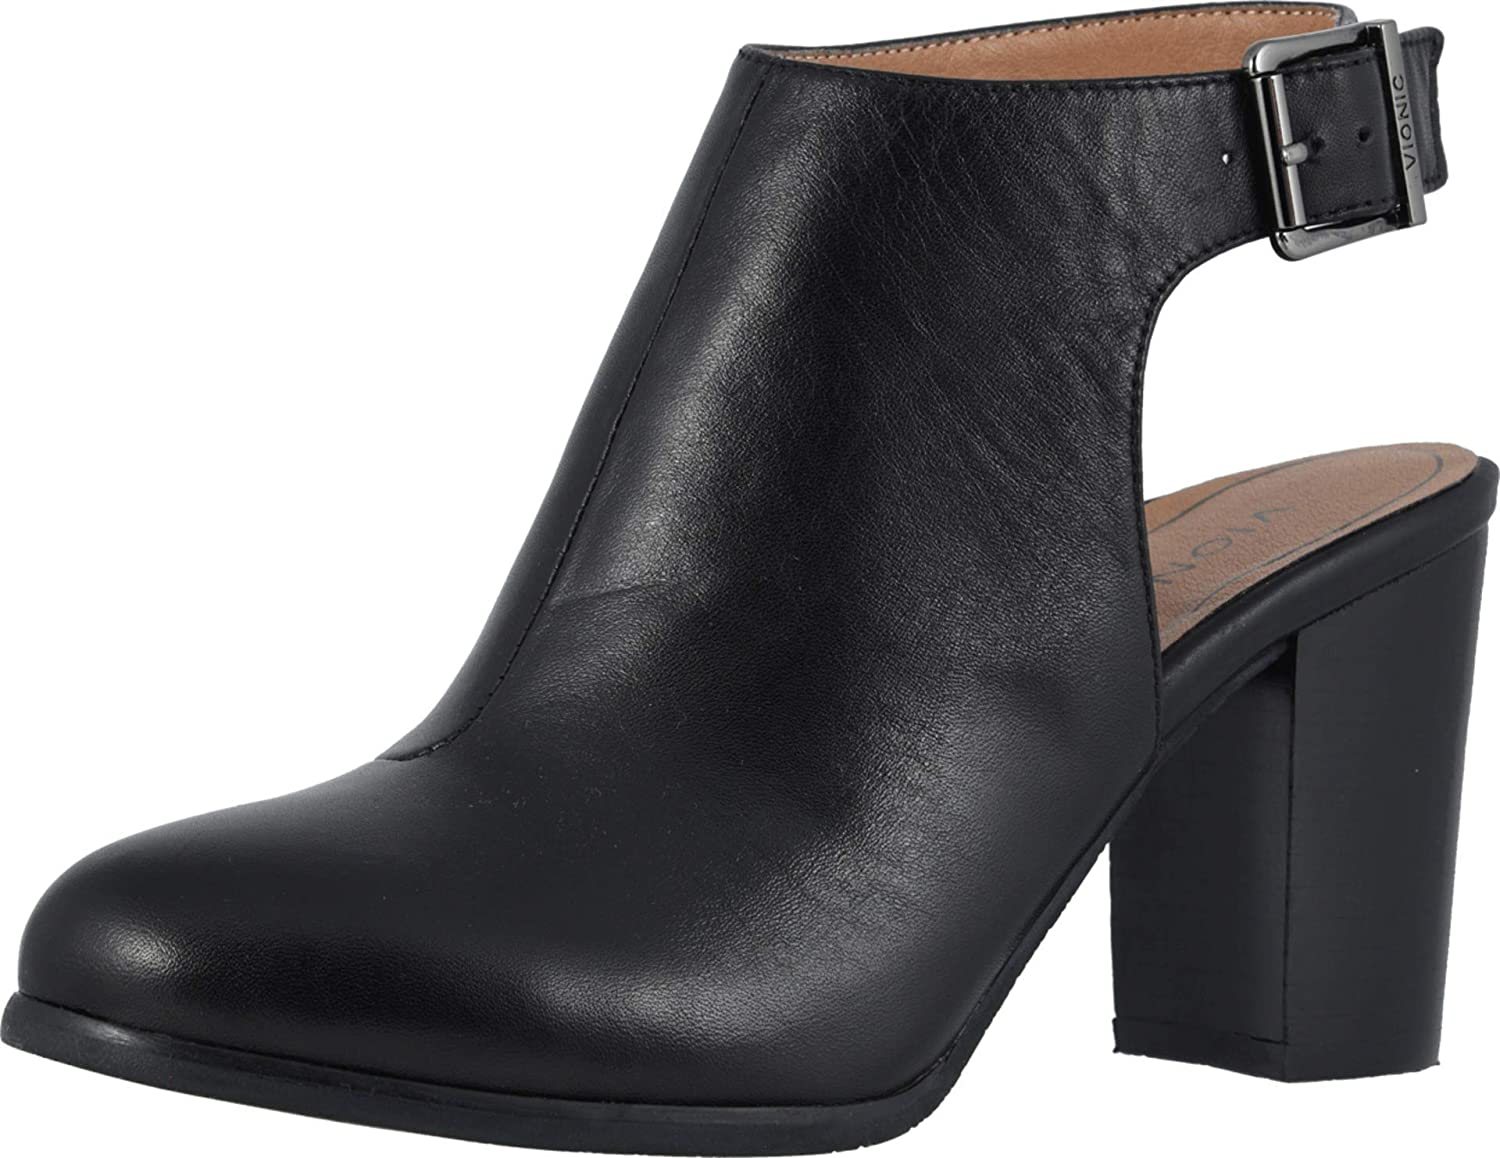 Vionic Women's Perk Lacey Ankle Strap Bootie - Ladies Boots with Concealed Orthotic Arch Support